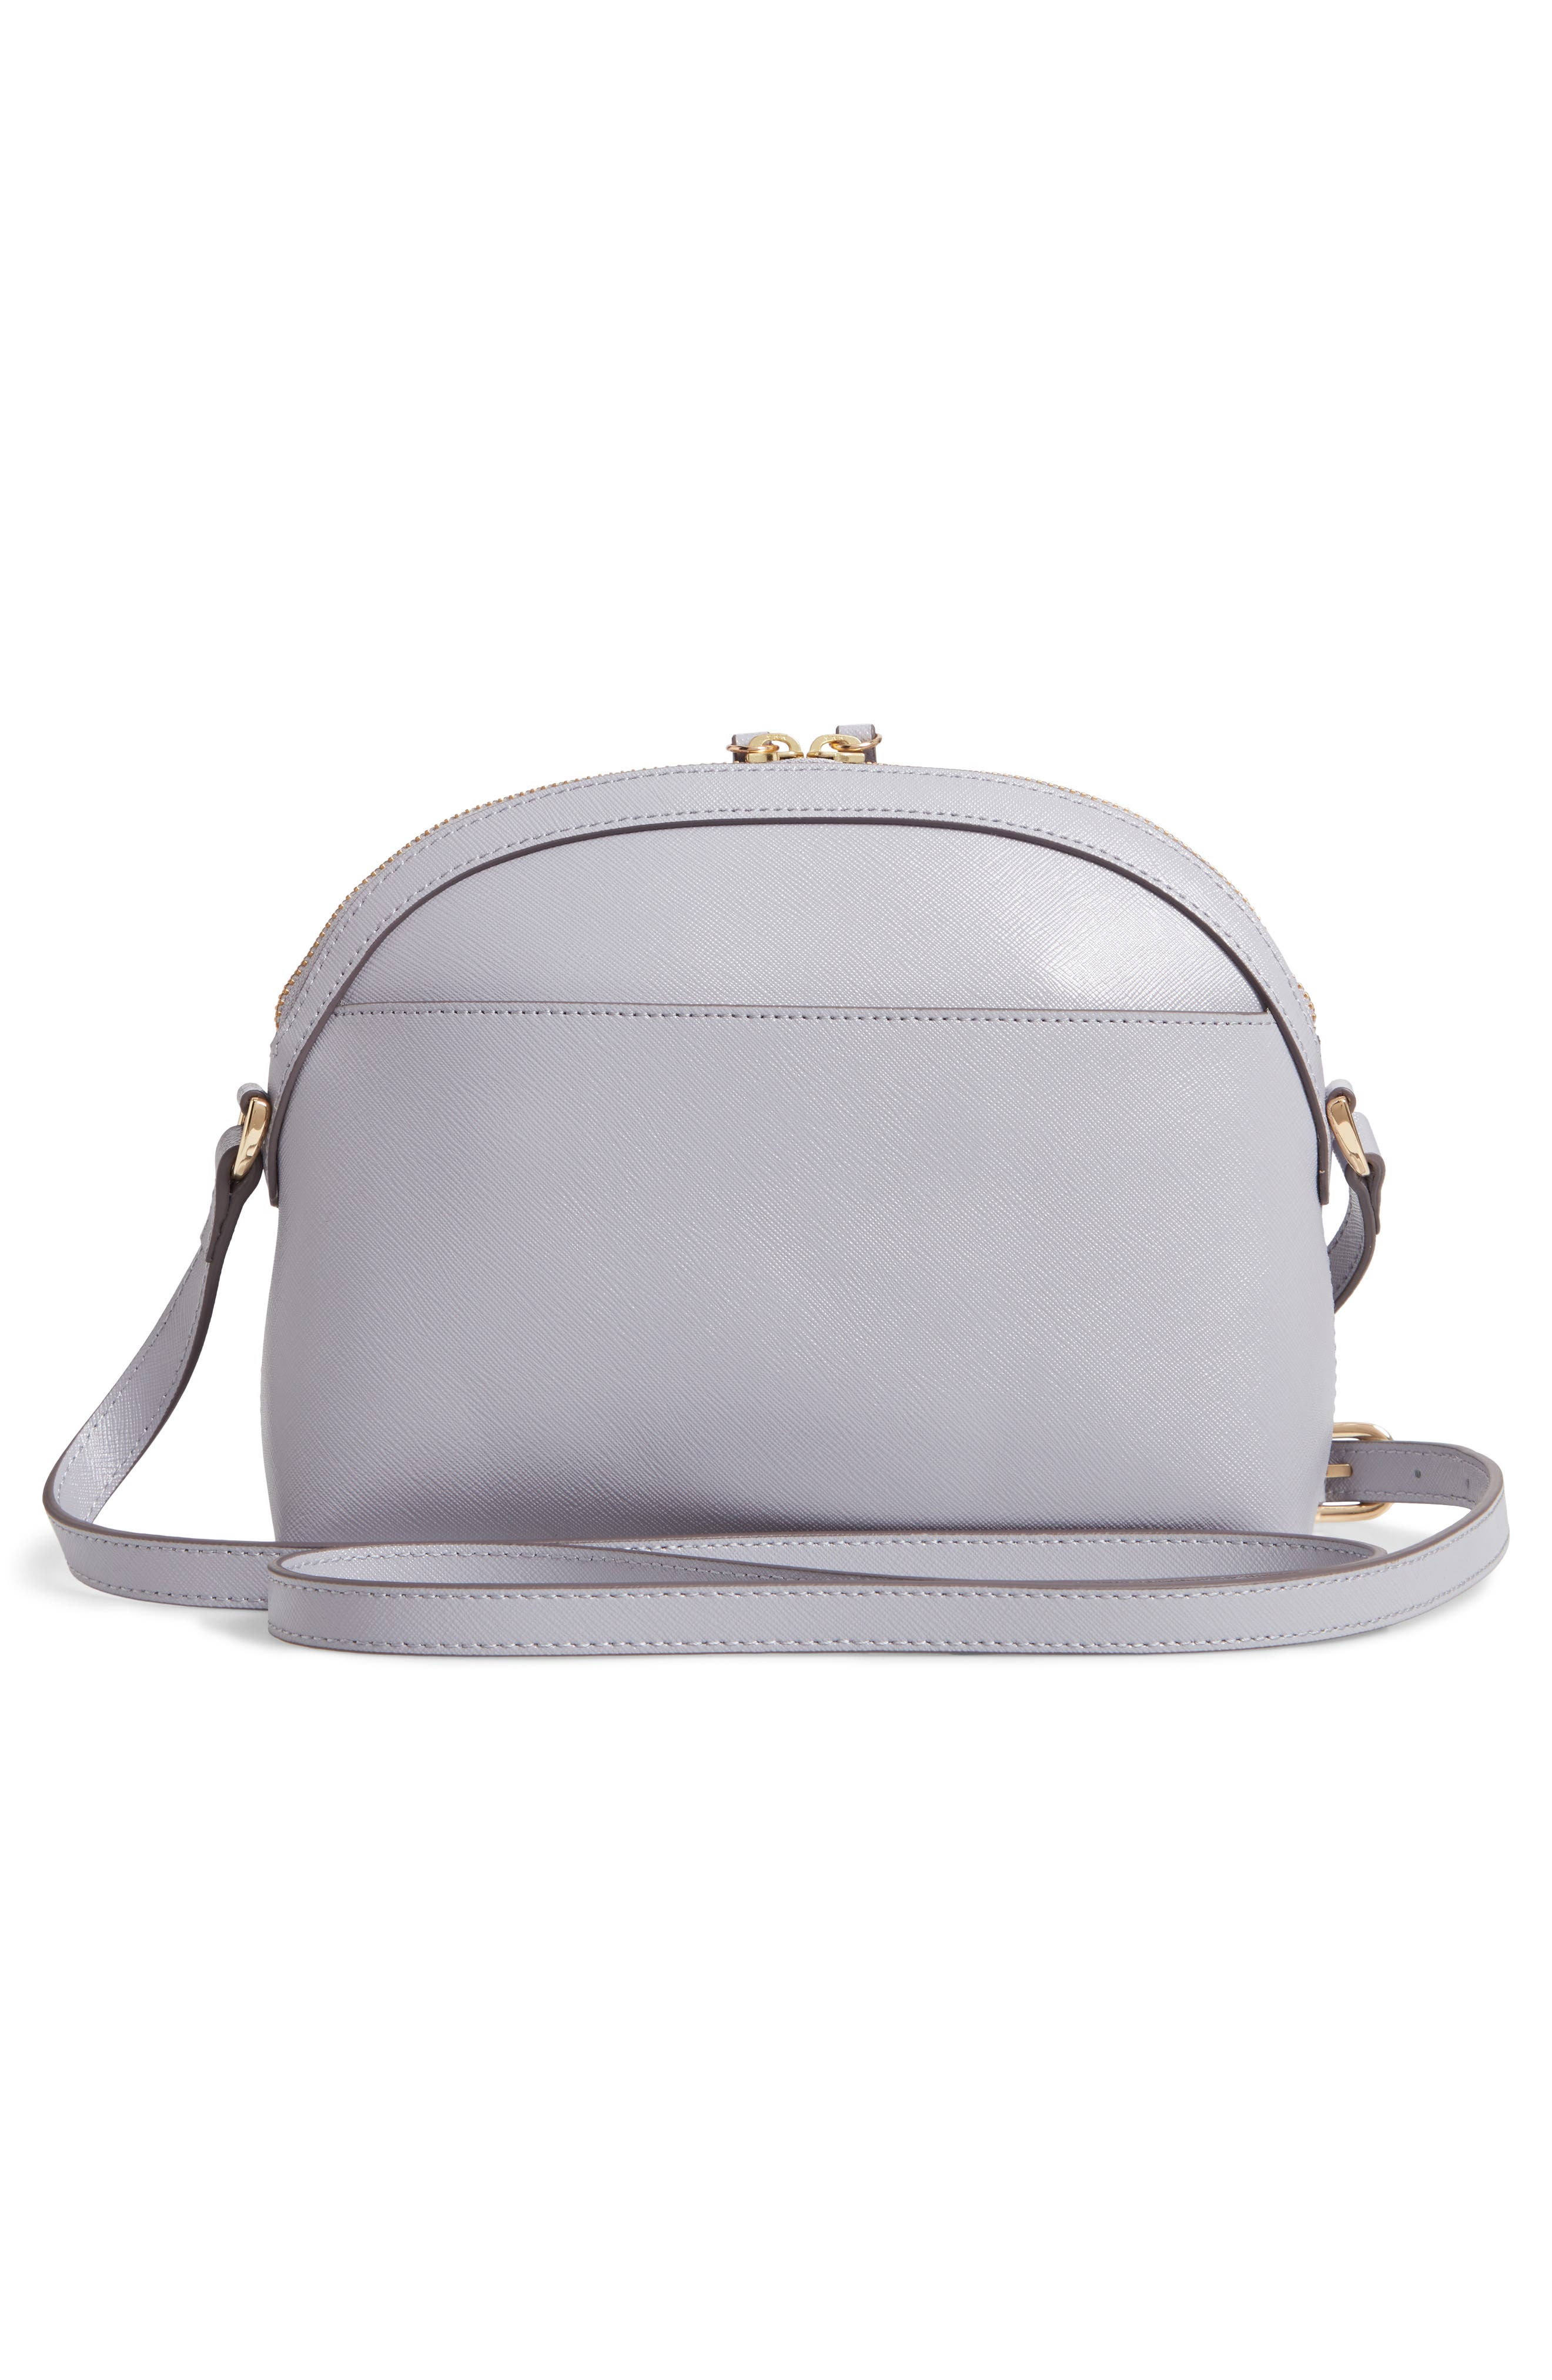 Isobel Half Moon Leather Crossbody Bag,                             Alternate thumbnail 3, color,                             GREY LILAC